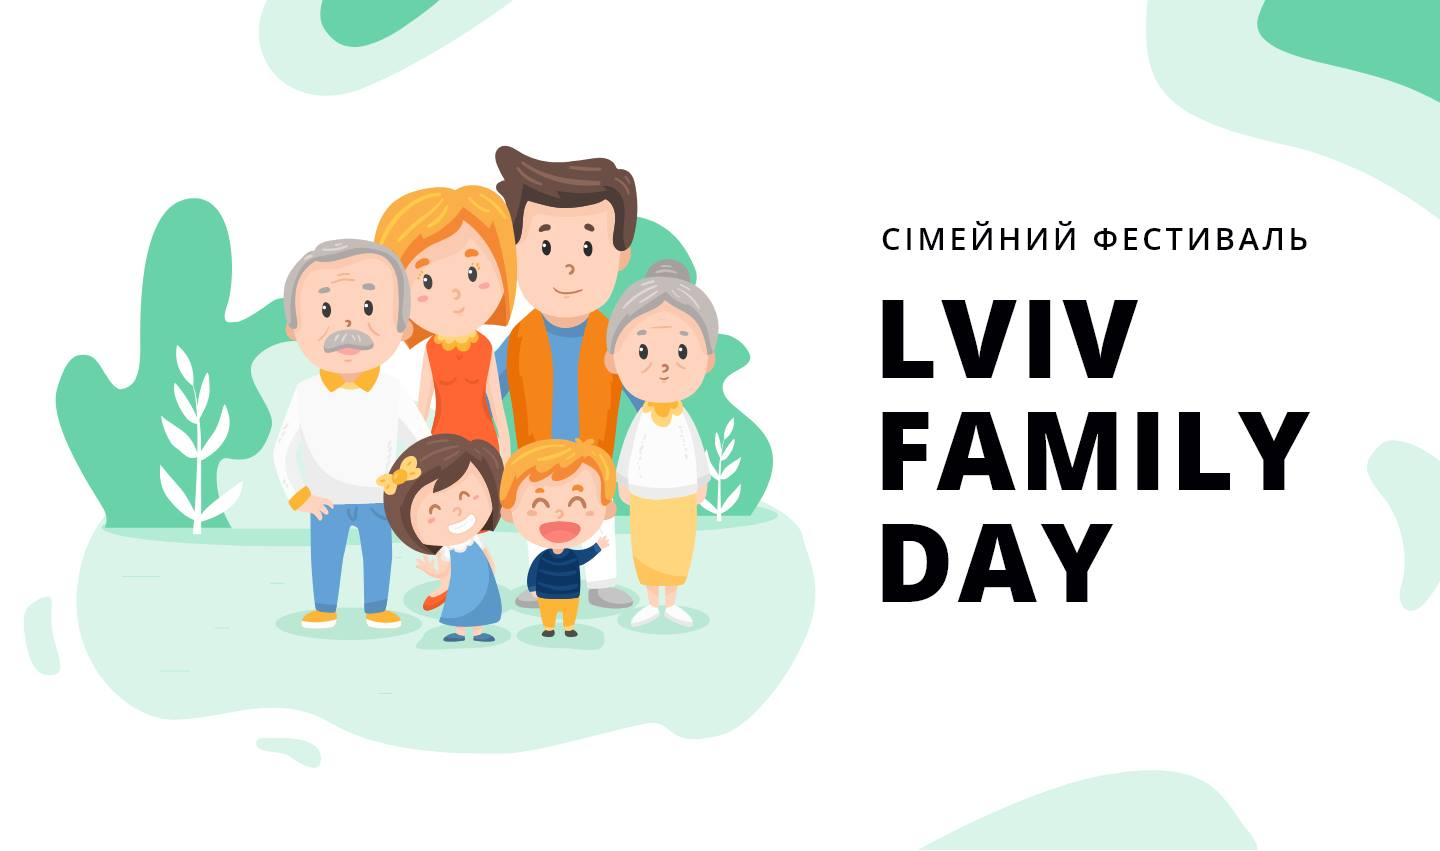 Сімейний фестиваль LVIV FAMILY DAY 2019